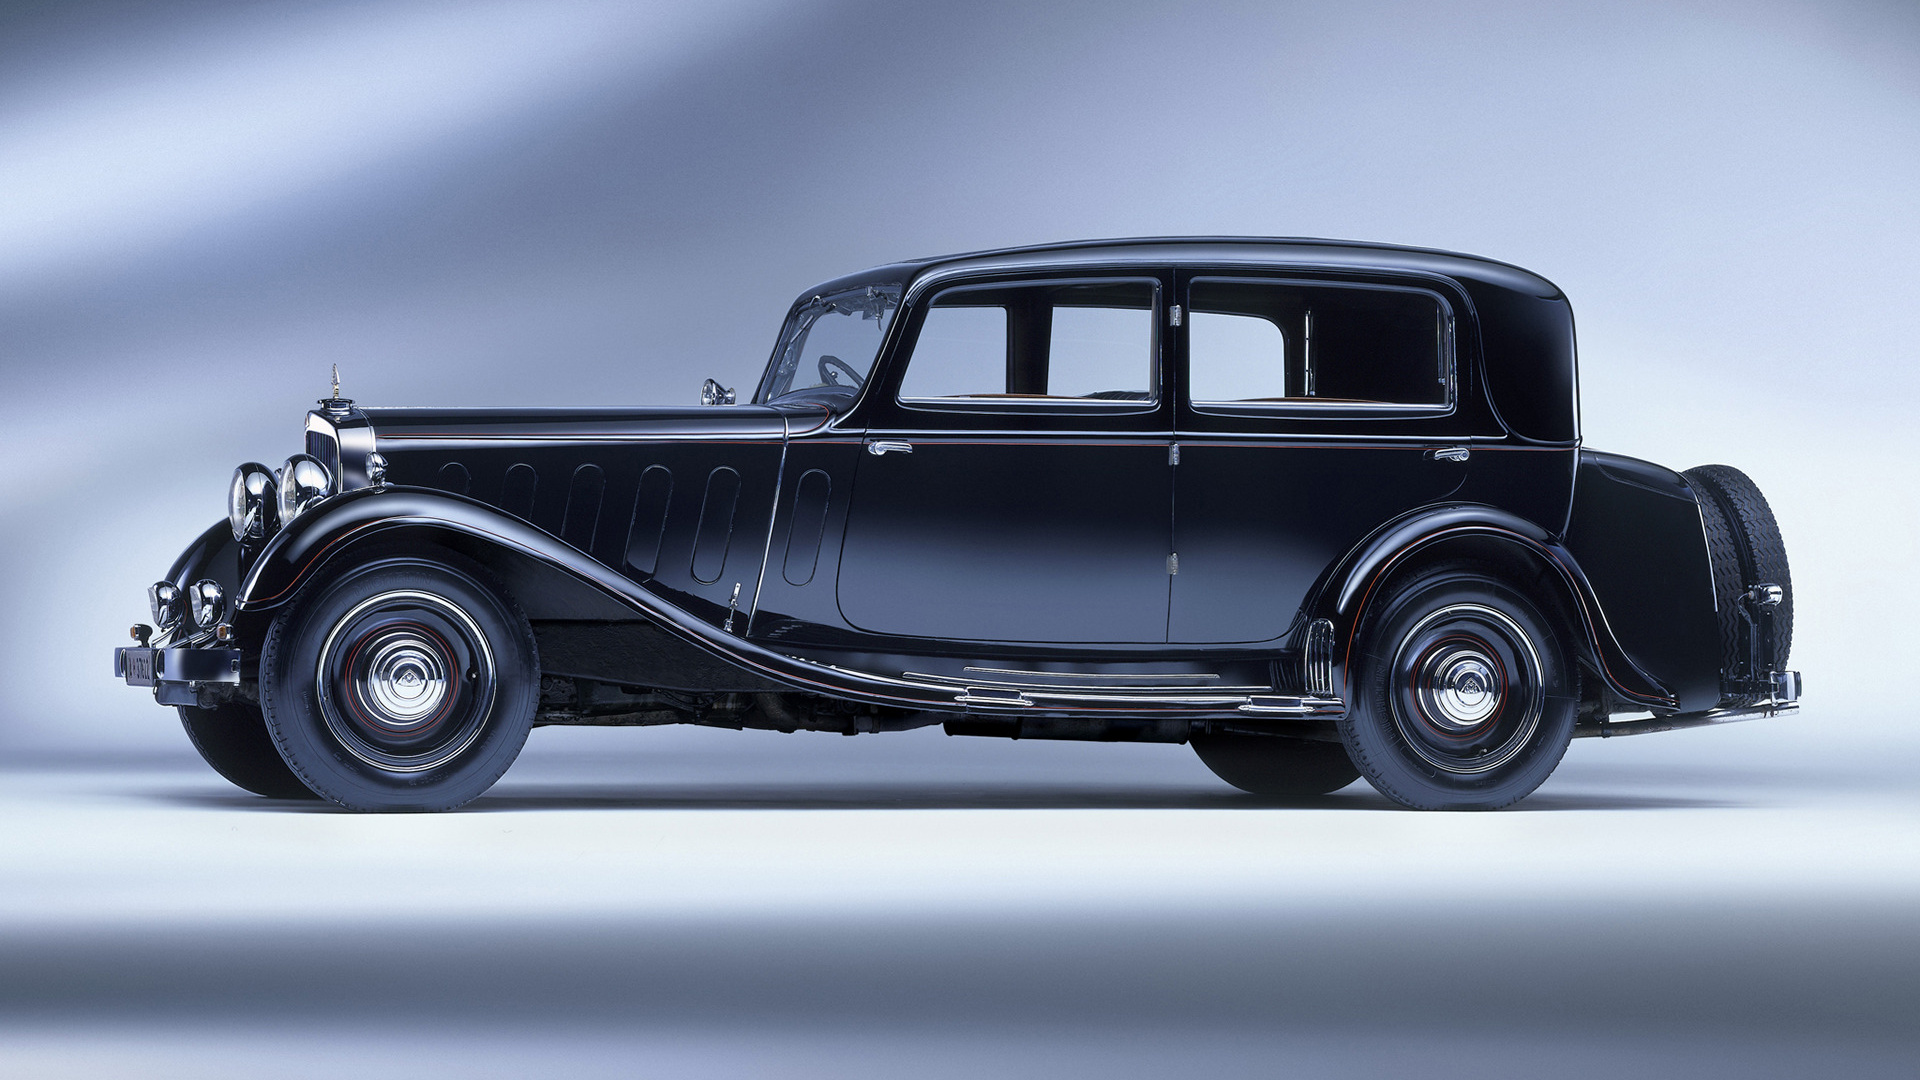 1928 Maybach Zeppelin DS7 Luxury Limousine Wallpapers